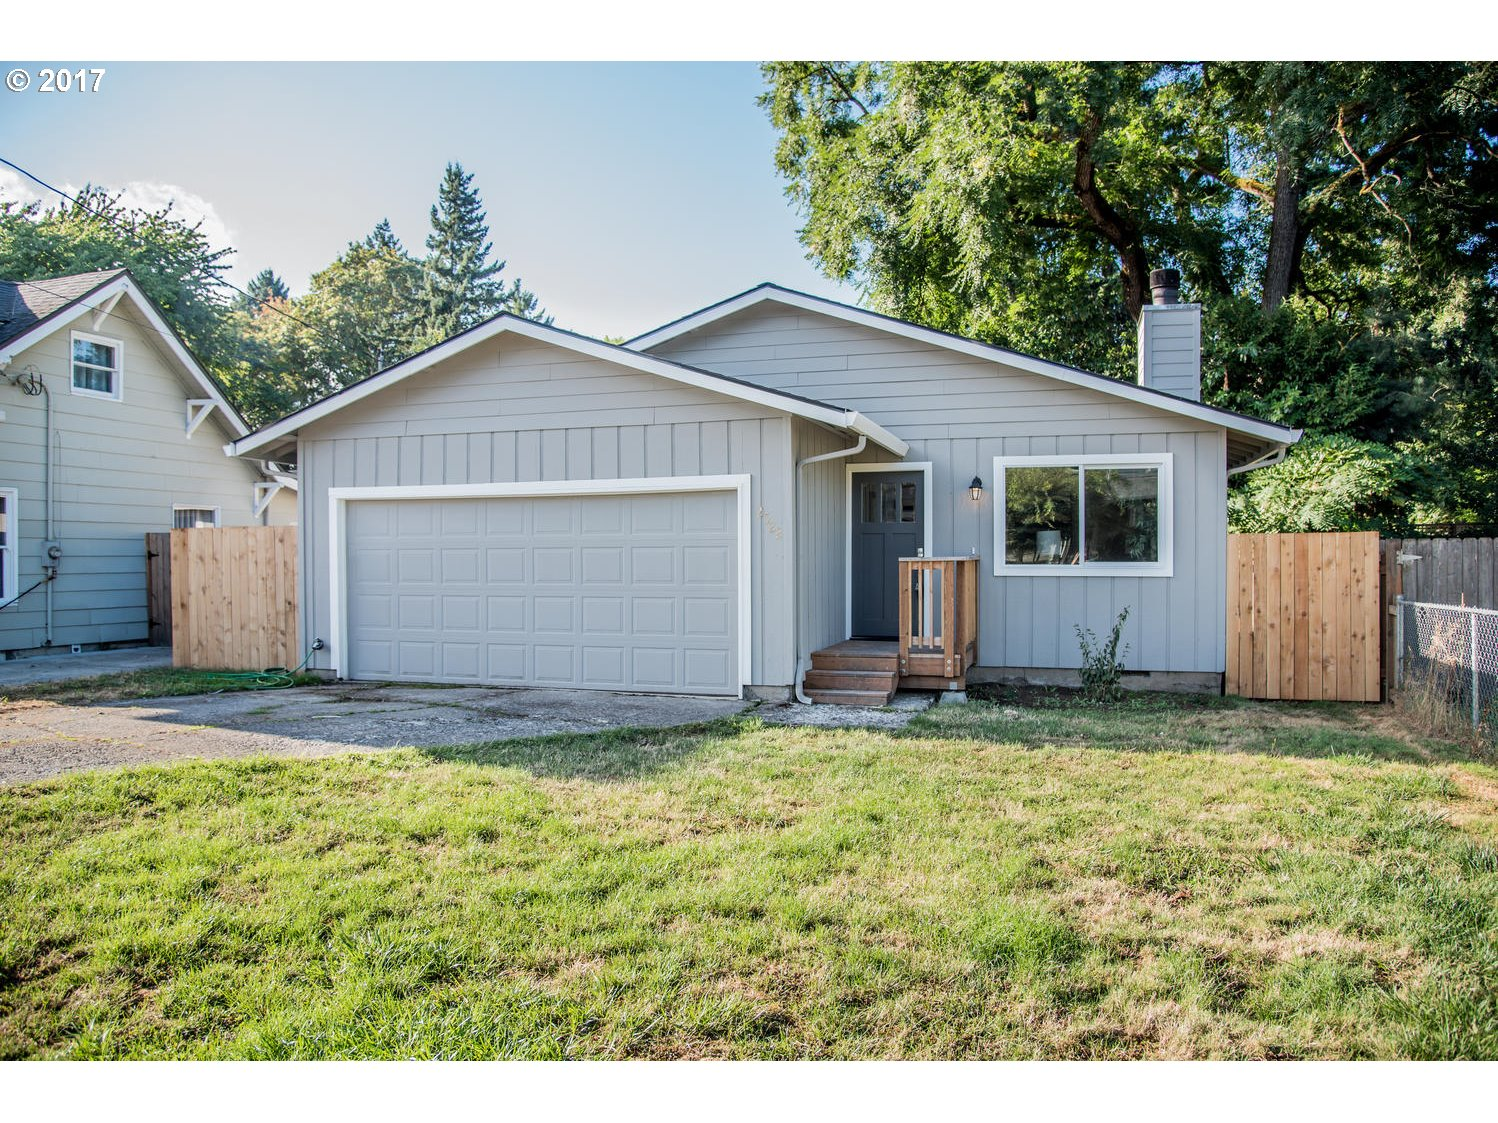 Remodeled 1 Level Ranch 3 Bedroom 1 Bathroom 1046 SQ Ft Which Features New roof, New Engineered Wood Floors, Tile Flooring And Surround, New Cabinets And Quartz Counters, SS Appliances, New Furnace and A/C, Updated Plumbing, All Paint, New Vinyl Windows, Sod To Be Installed As Soon As Weather Cools A Bit, New Deck, Fence To Be Replaced At East Side Of Property.